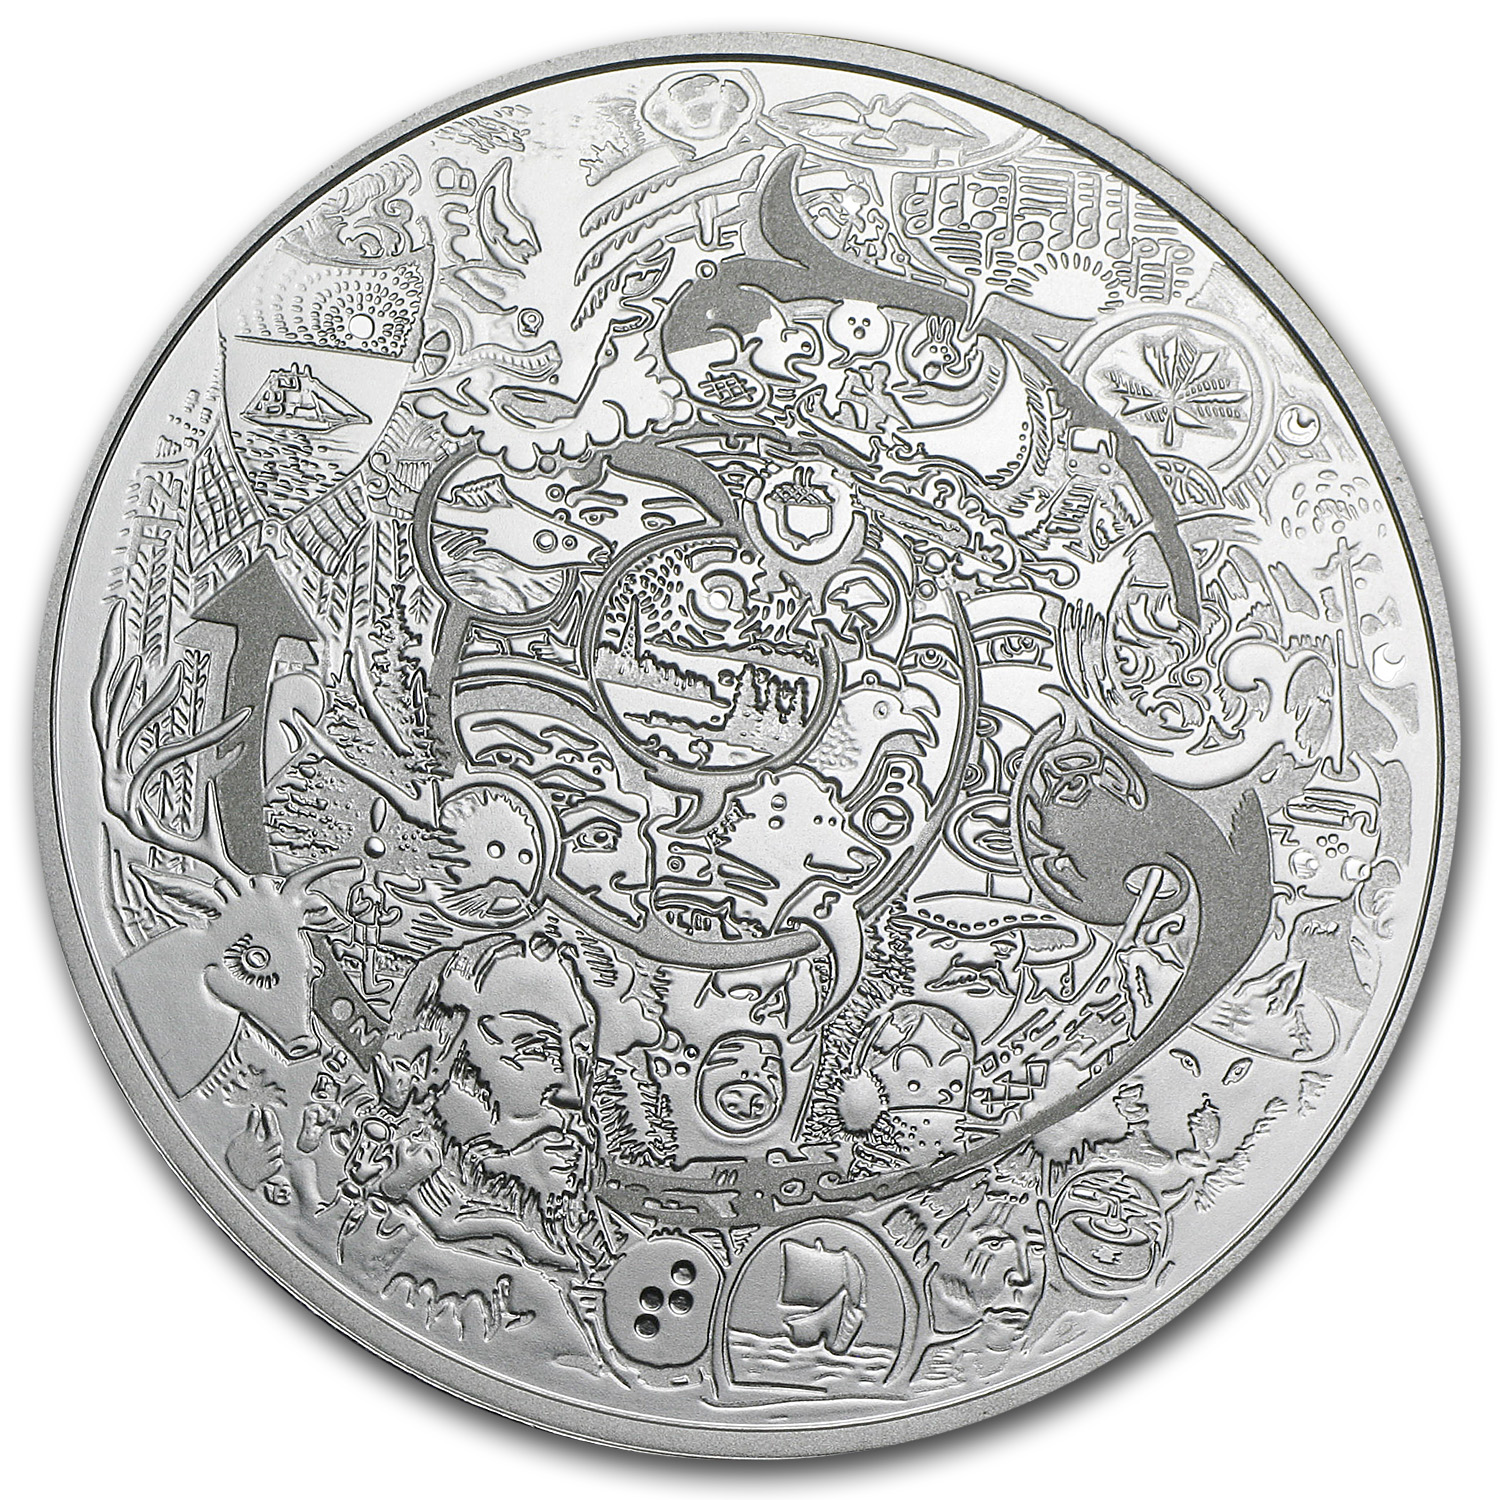 2014 2 oz Silver Canadian $30 Coin - Canadian Contemporary Art